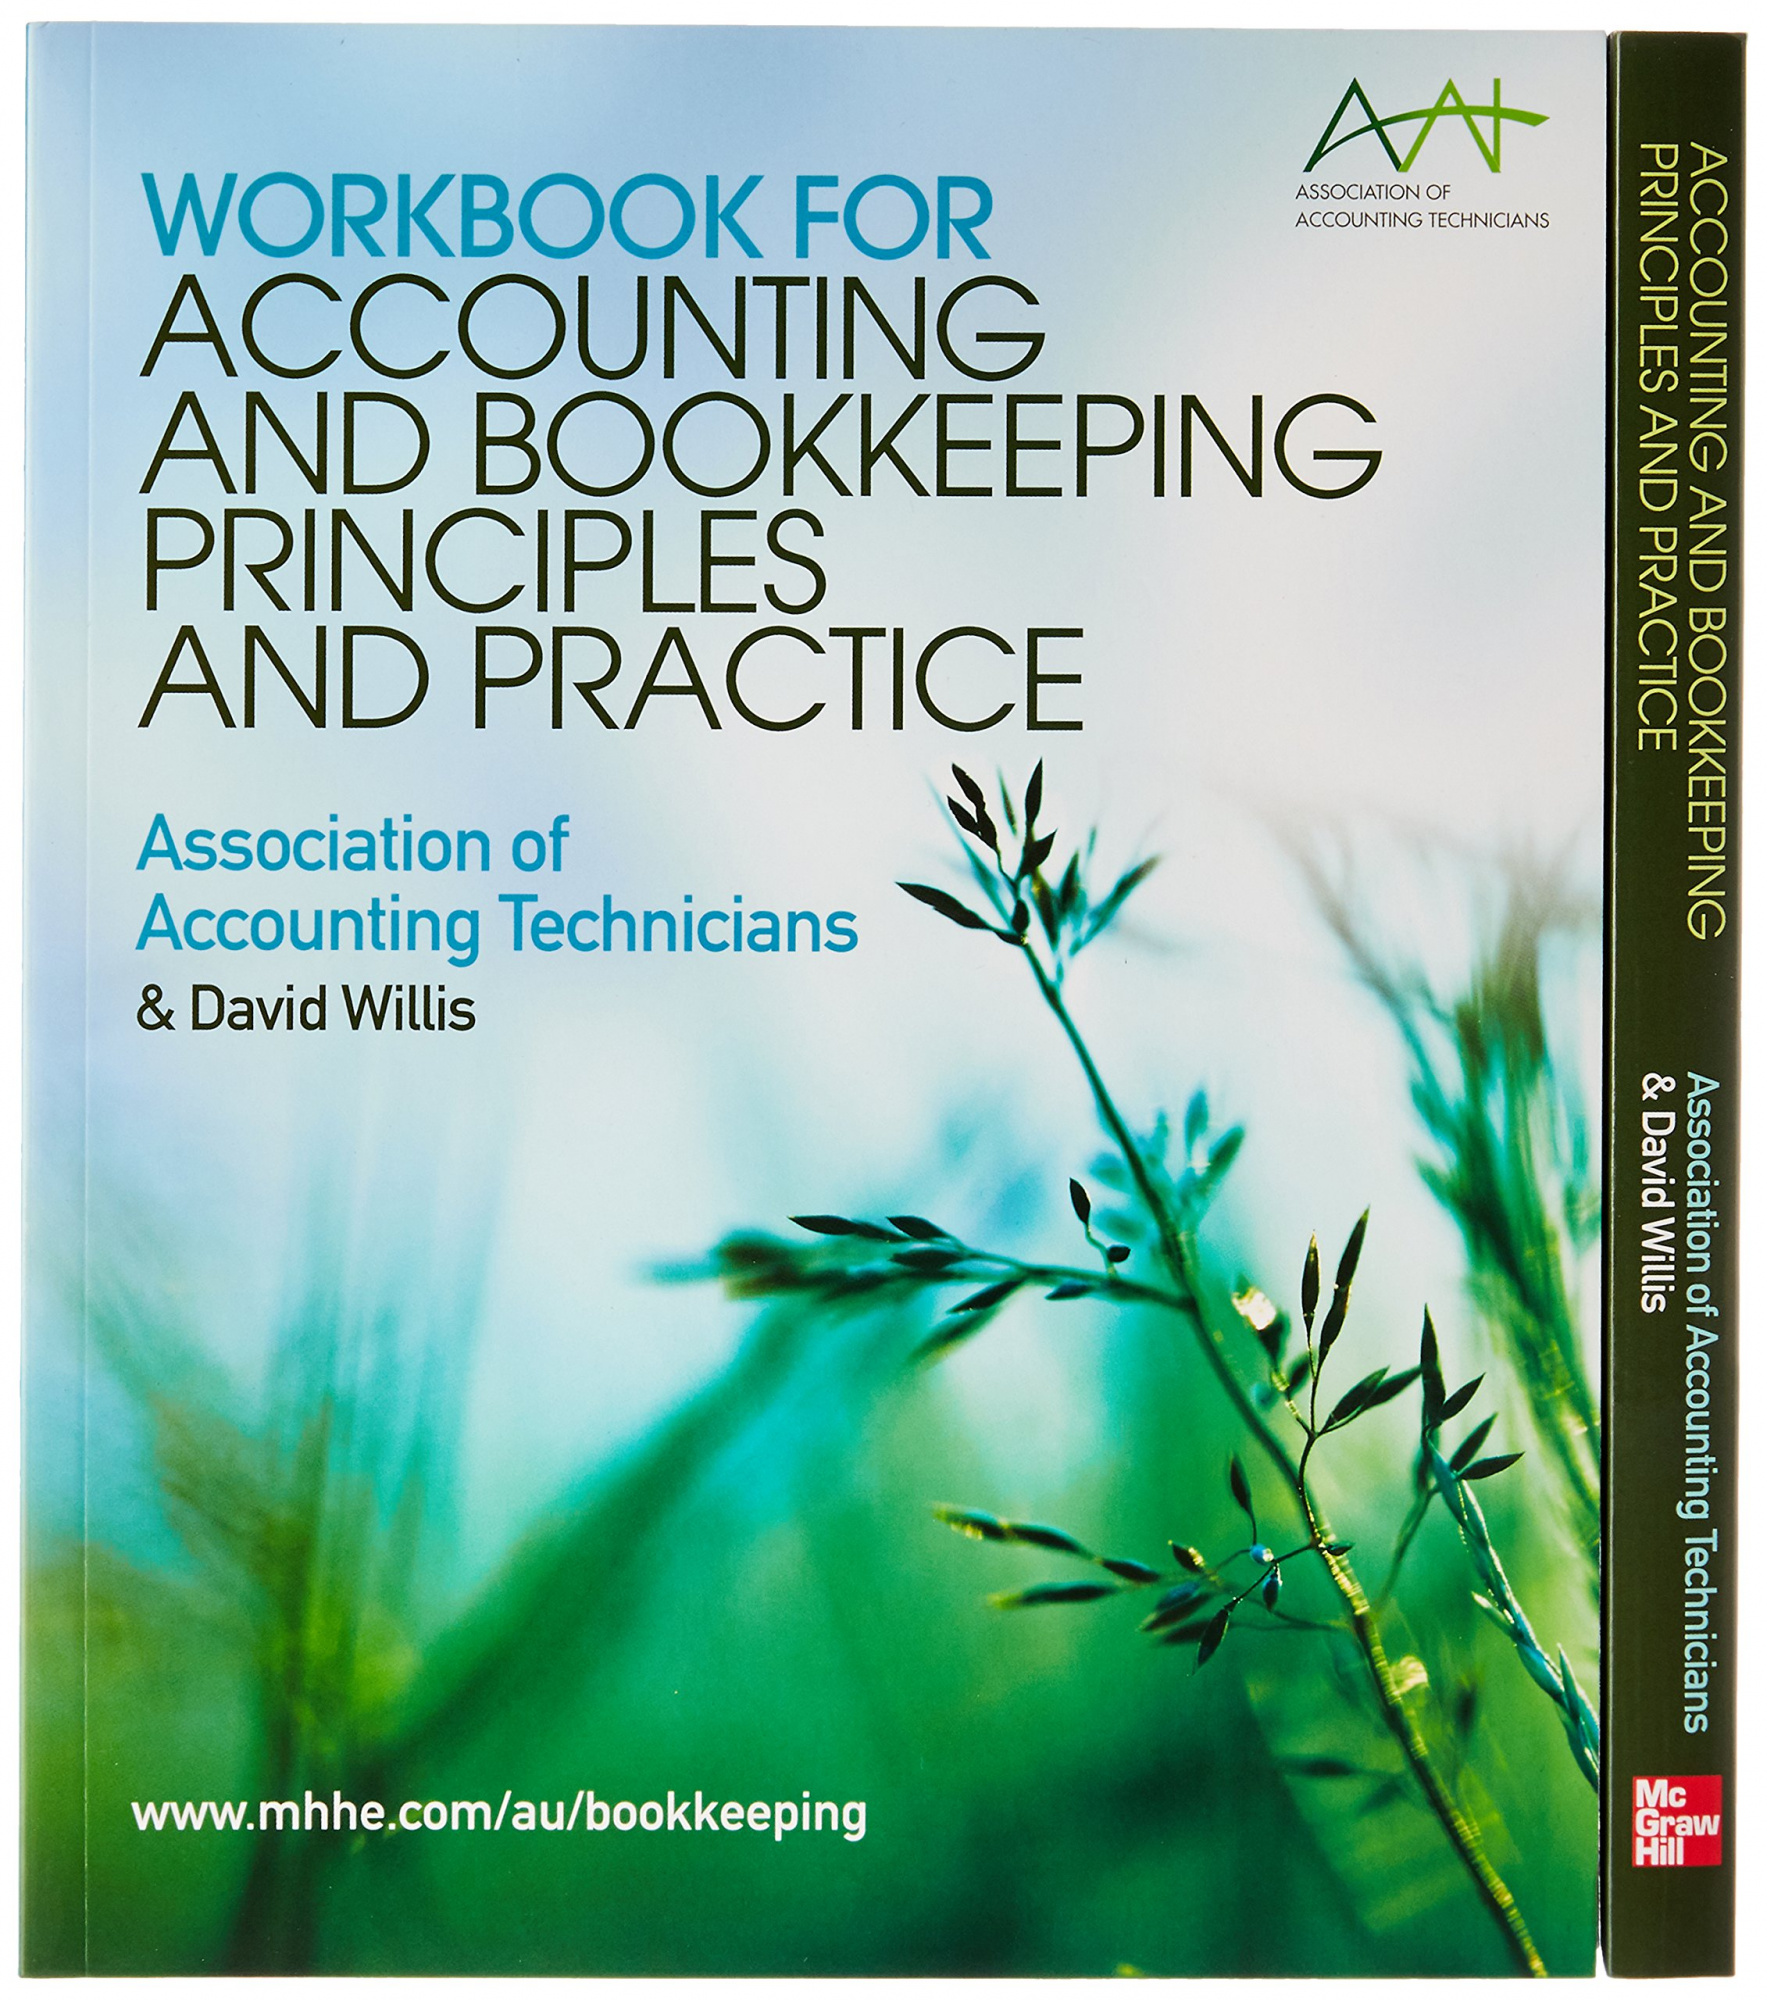 Accounting and Bookkeeping: Principles and Practice + Workbook Shrinkwrap